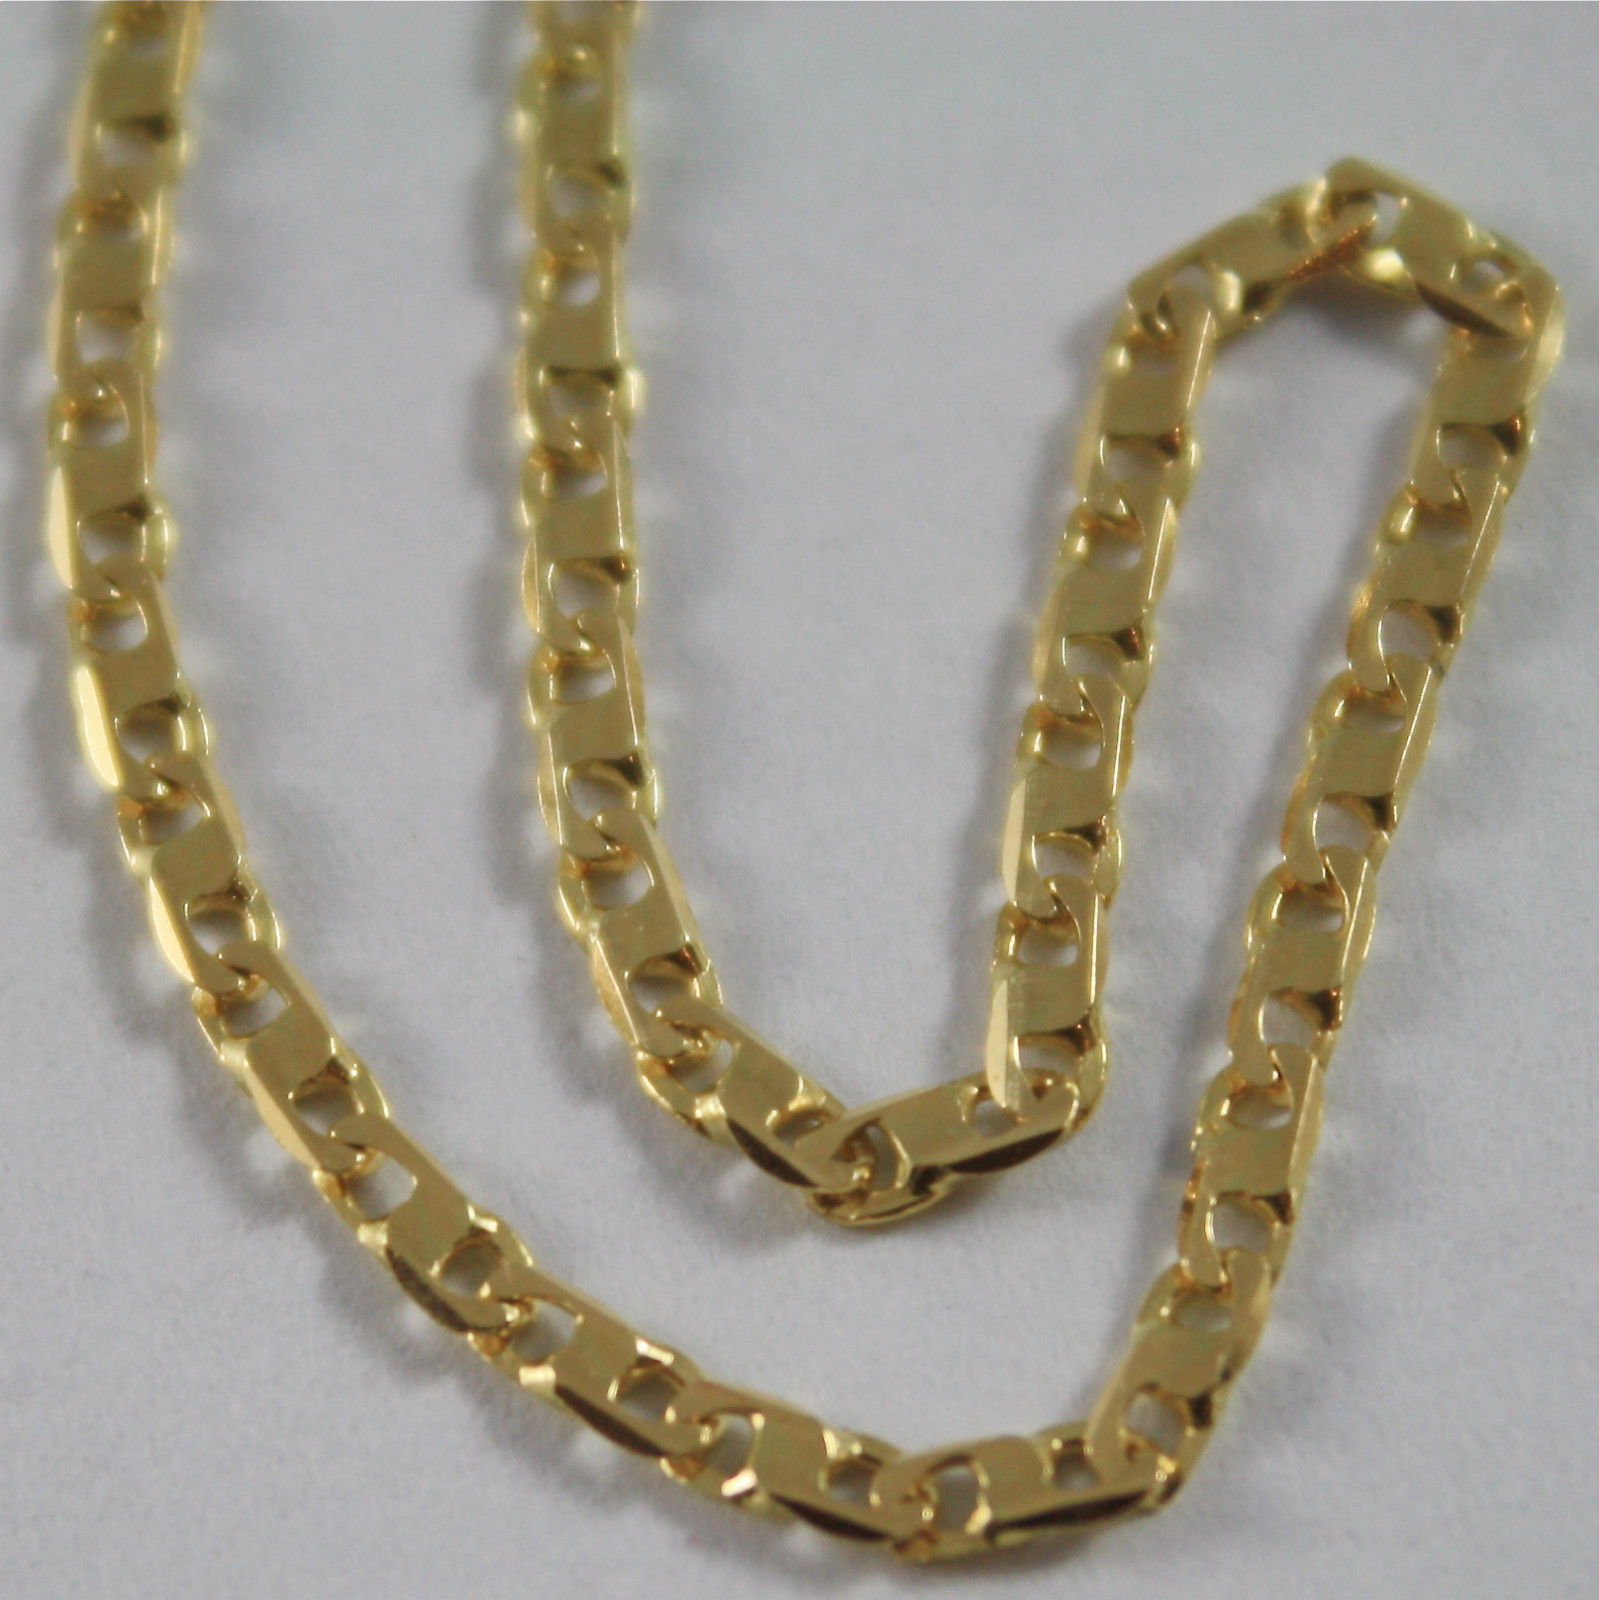 SOLID 18K YELLOW GOLD CHAIN NECKLACE WITH INFINITY MESH 19.68 IN. MADE IN ITALY